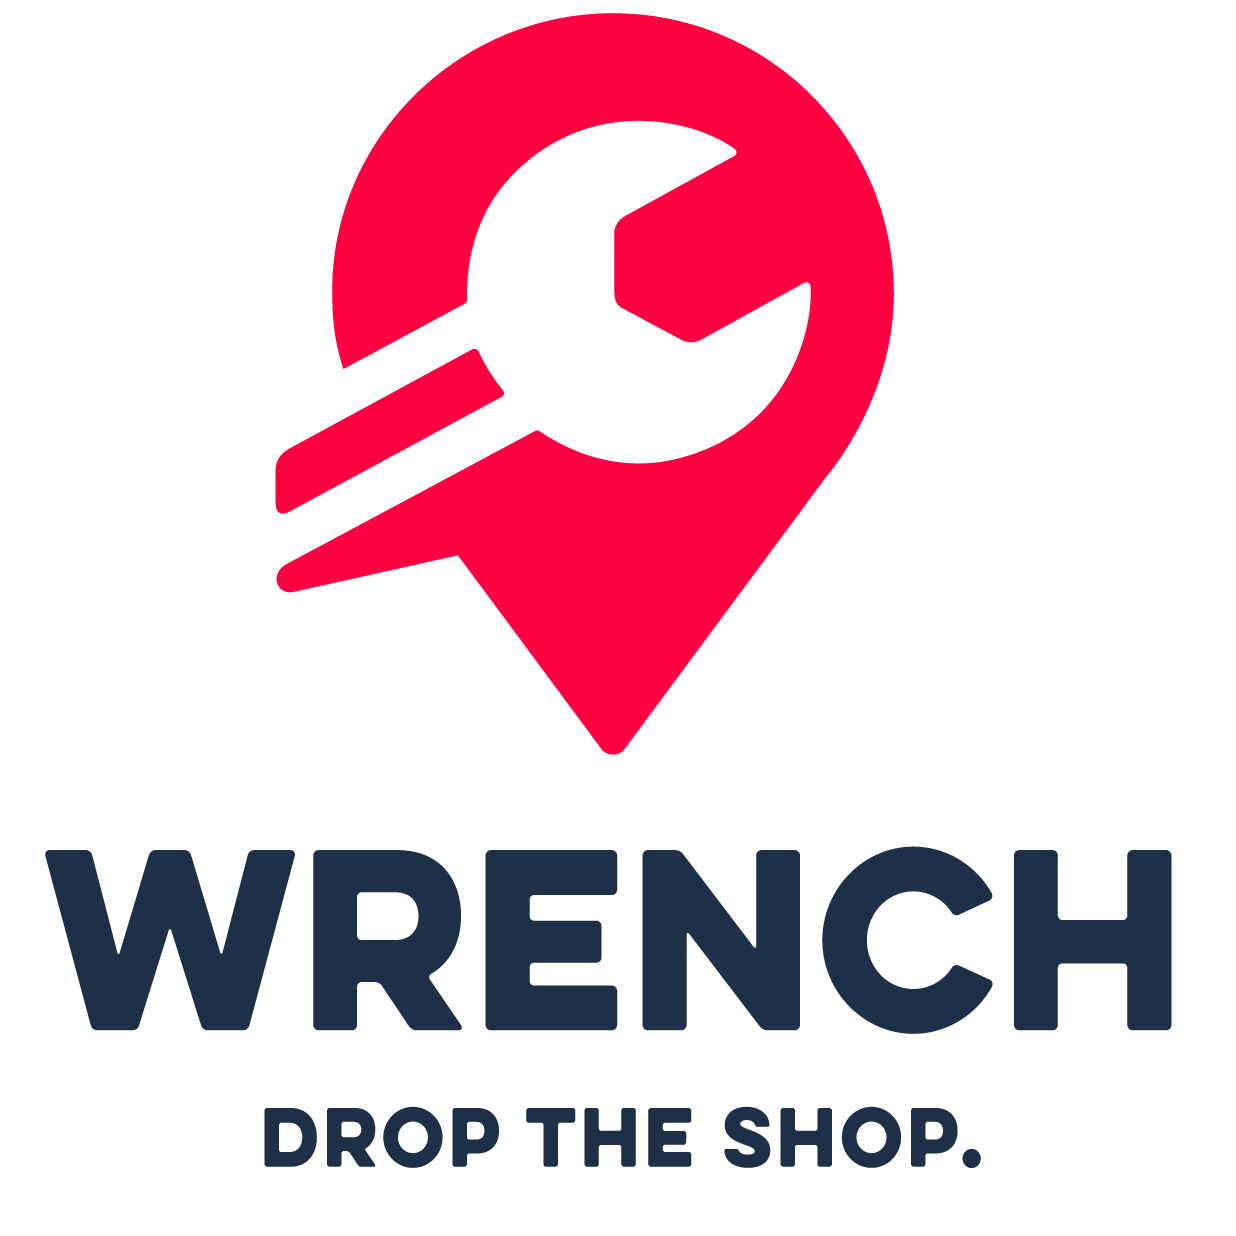 Wrench Inc. image 3